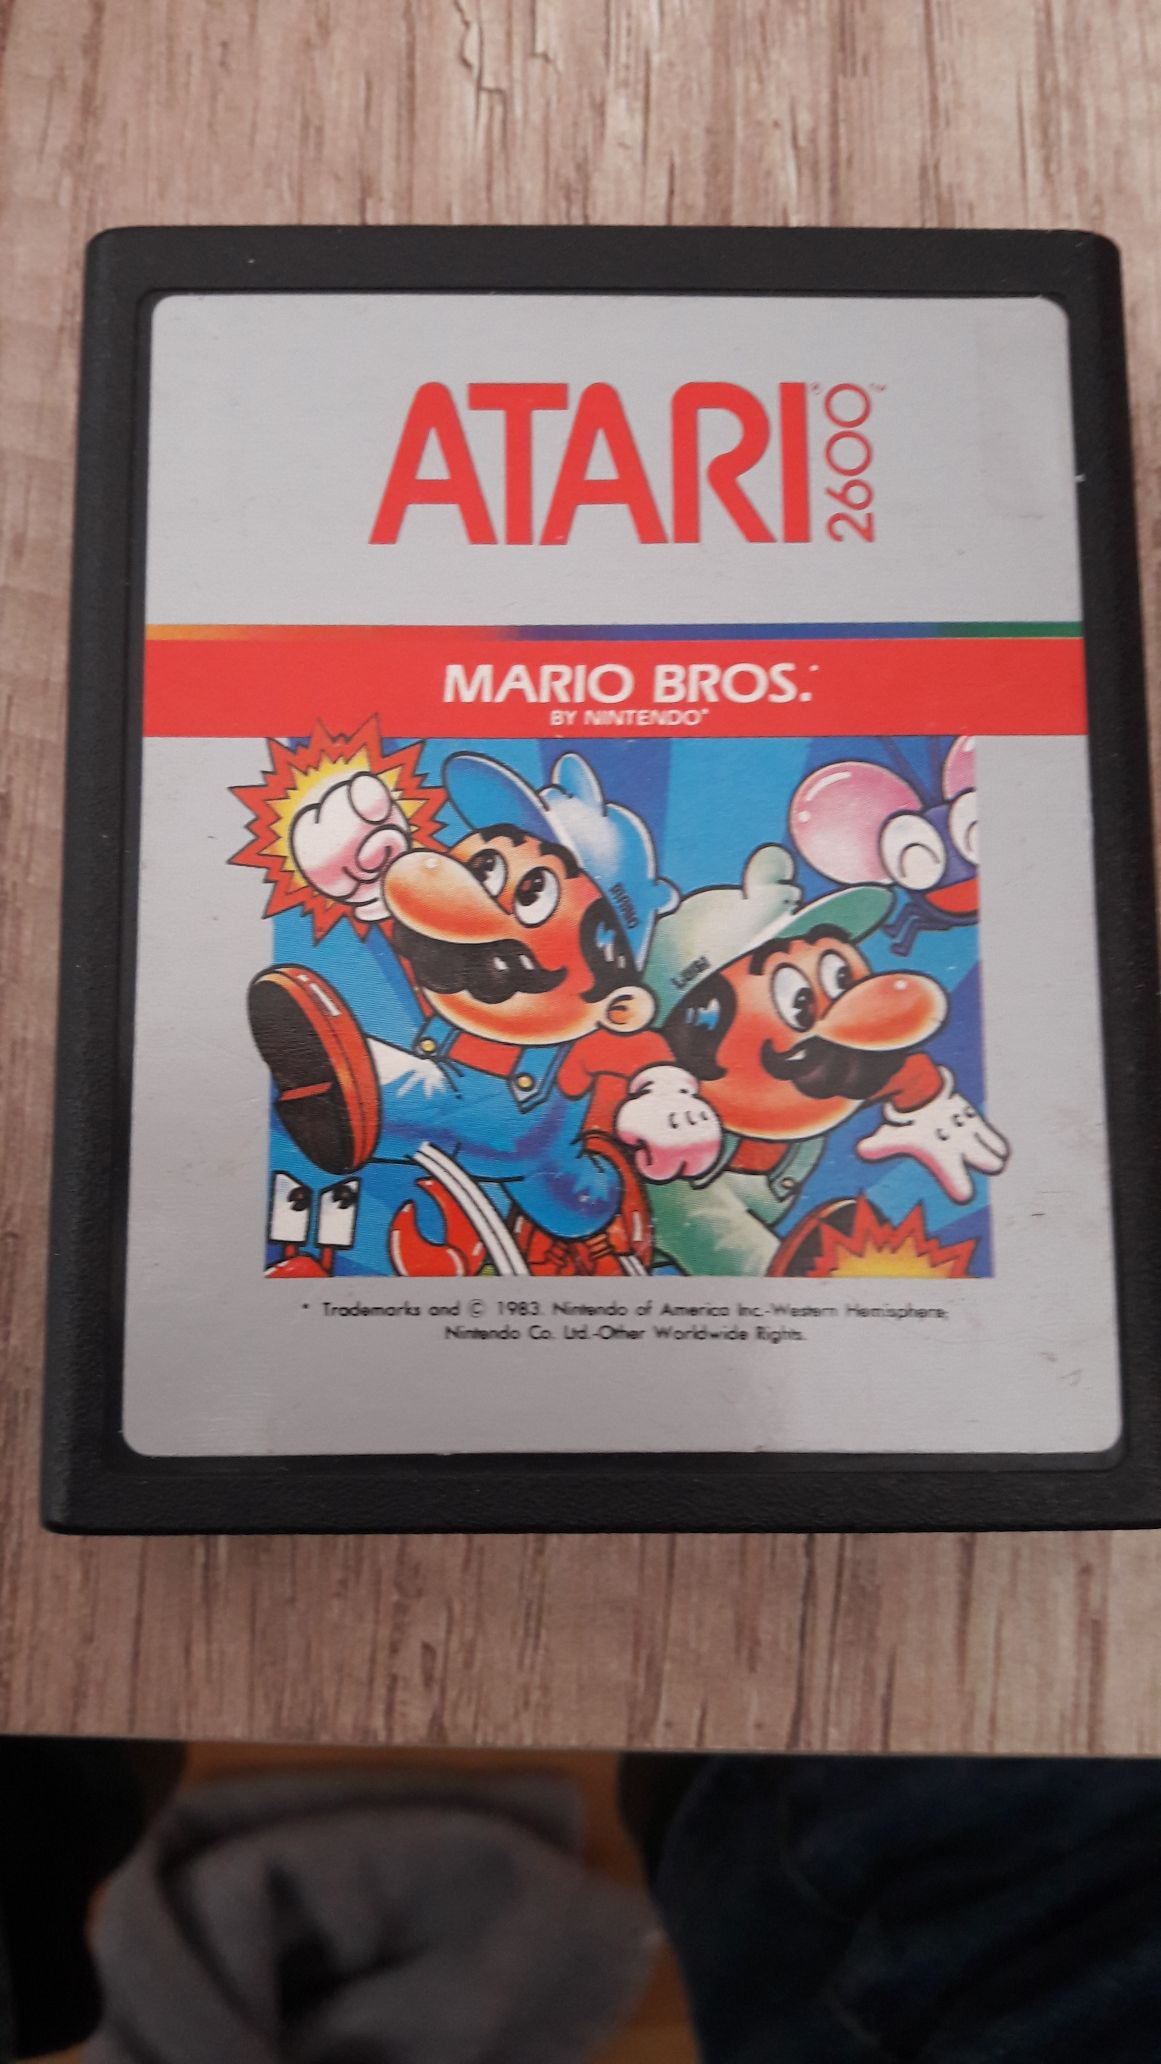 New Super Mario Bros. - Atari 2600 cover